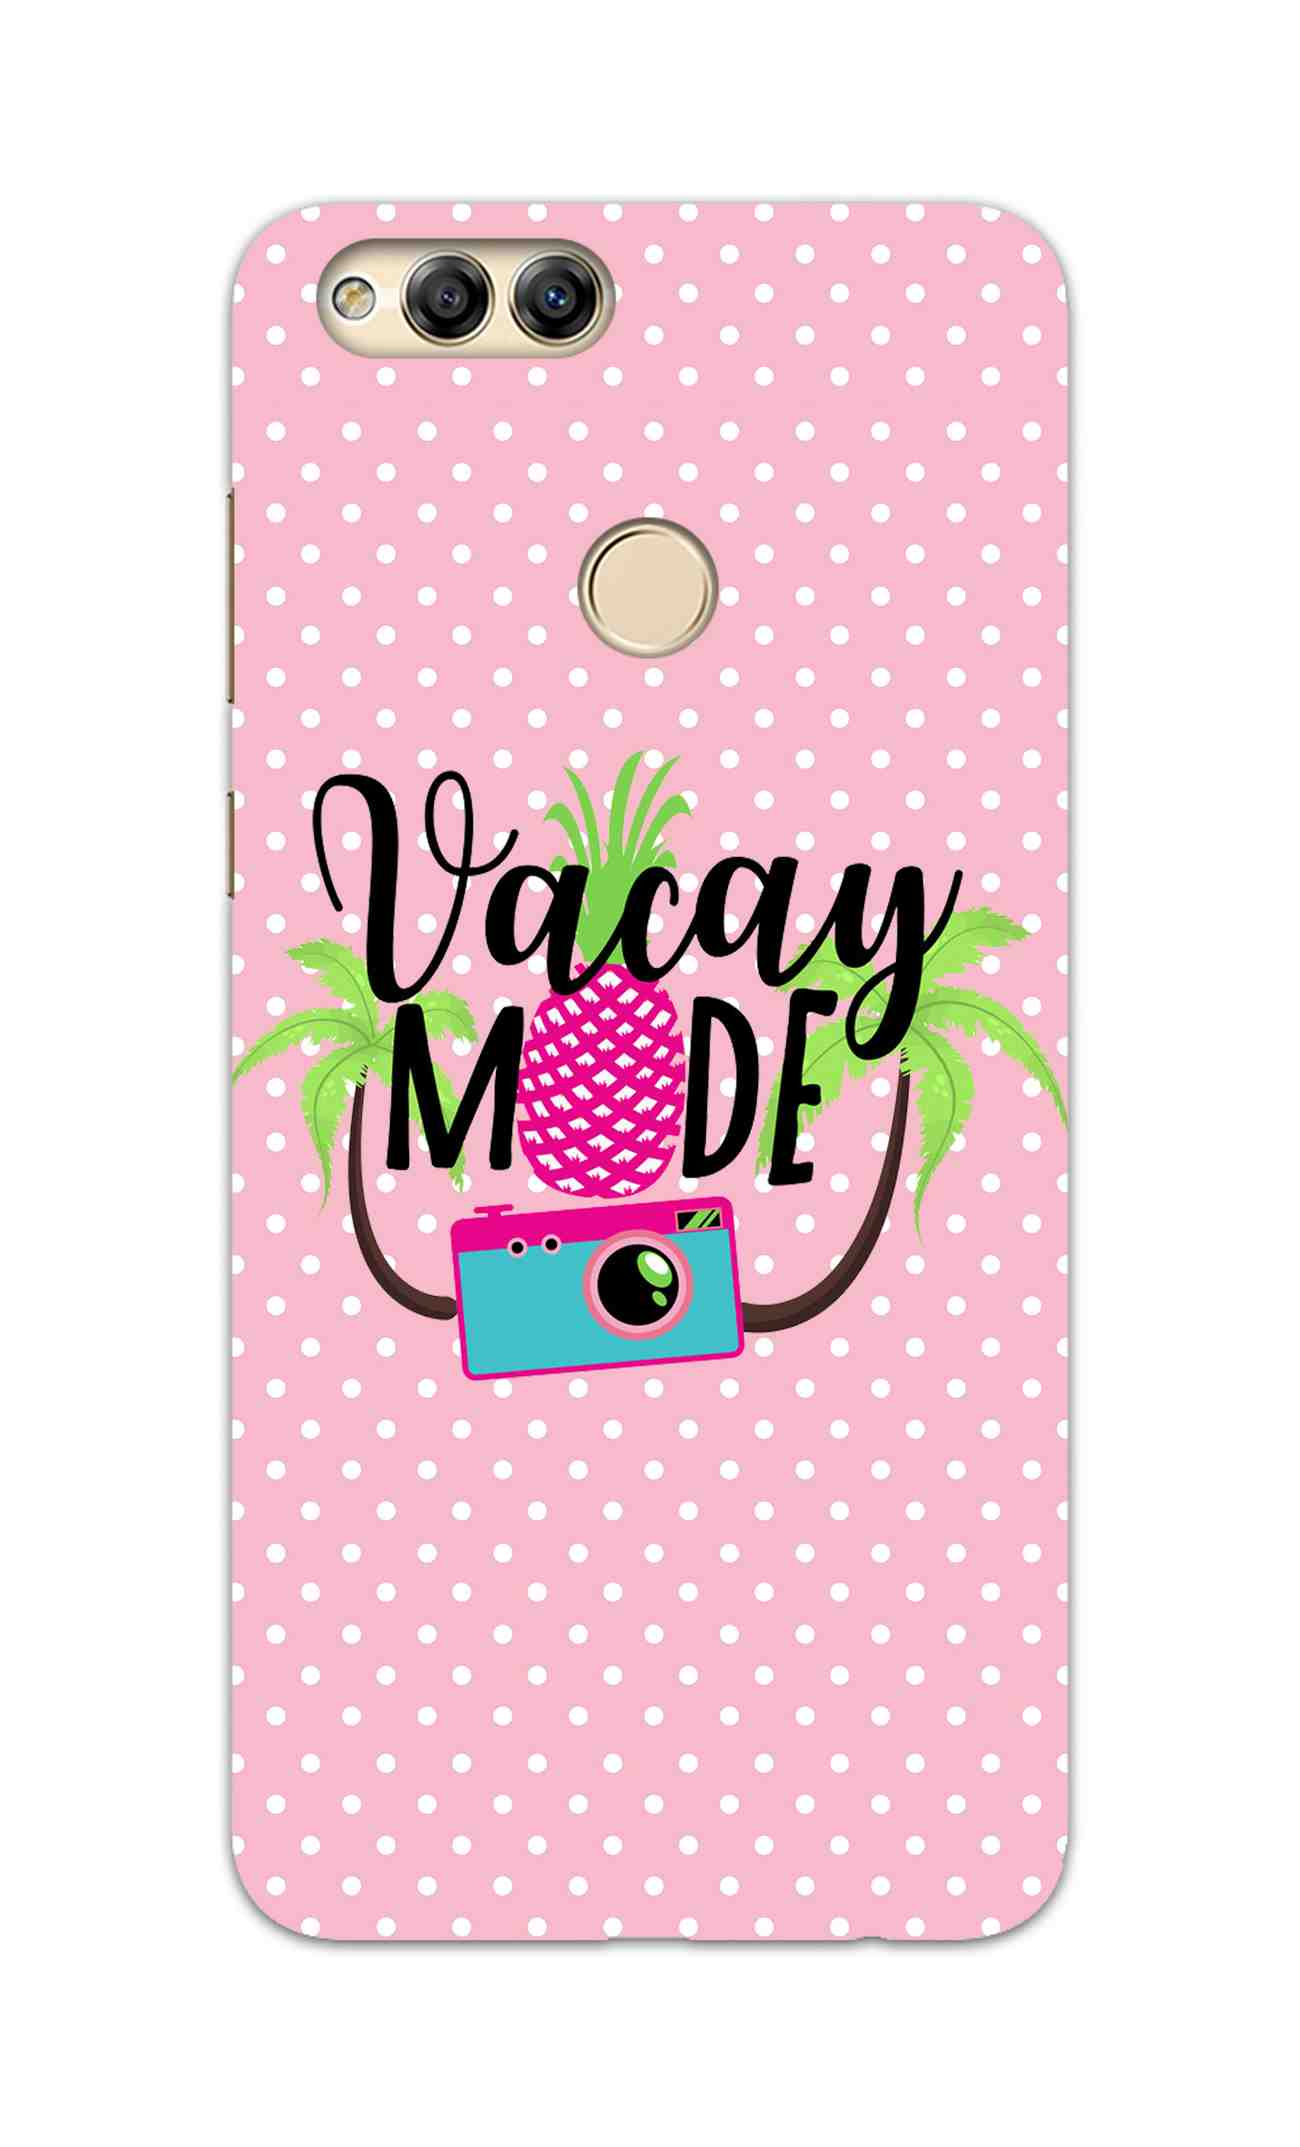 Vacay Mode With Cute White Dots Typography Honor 7X Mobile Cover Case